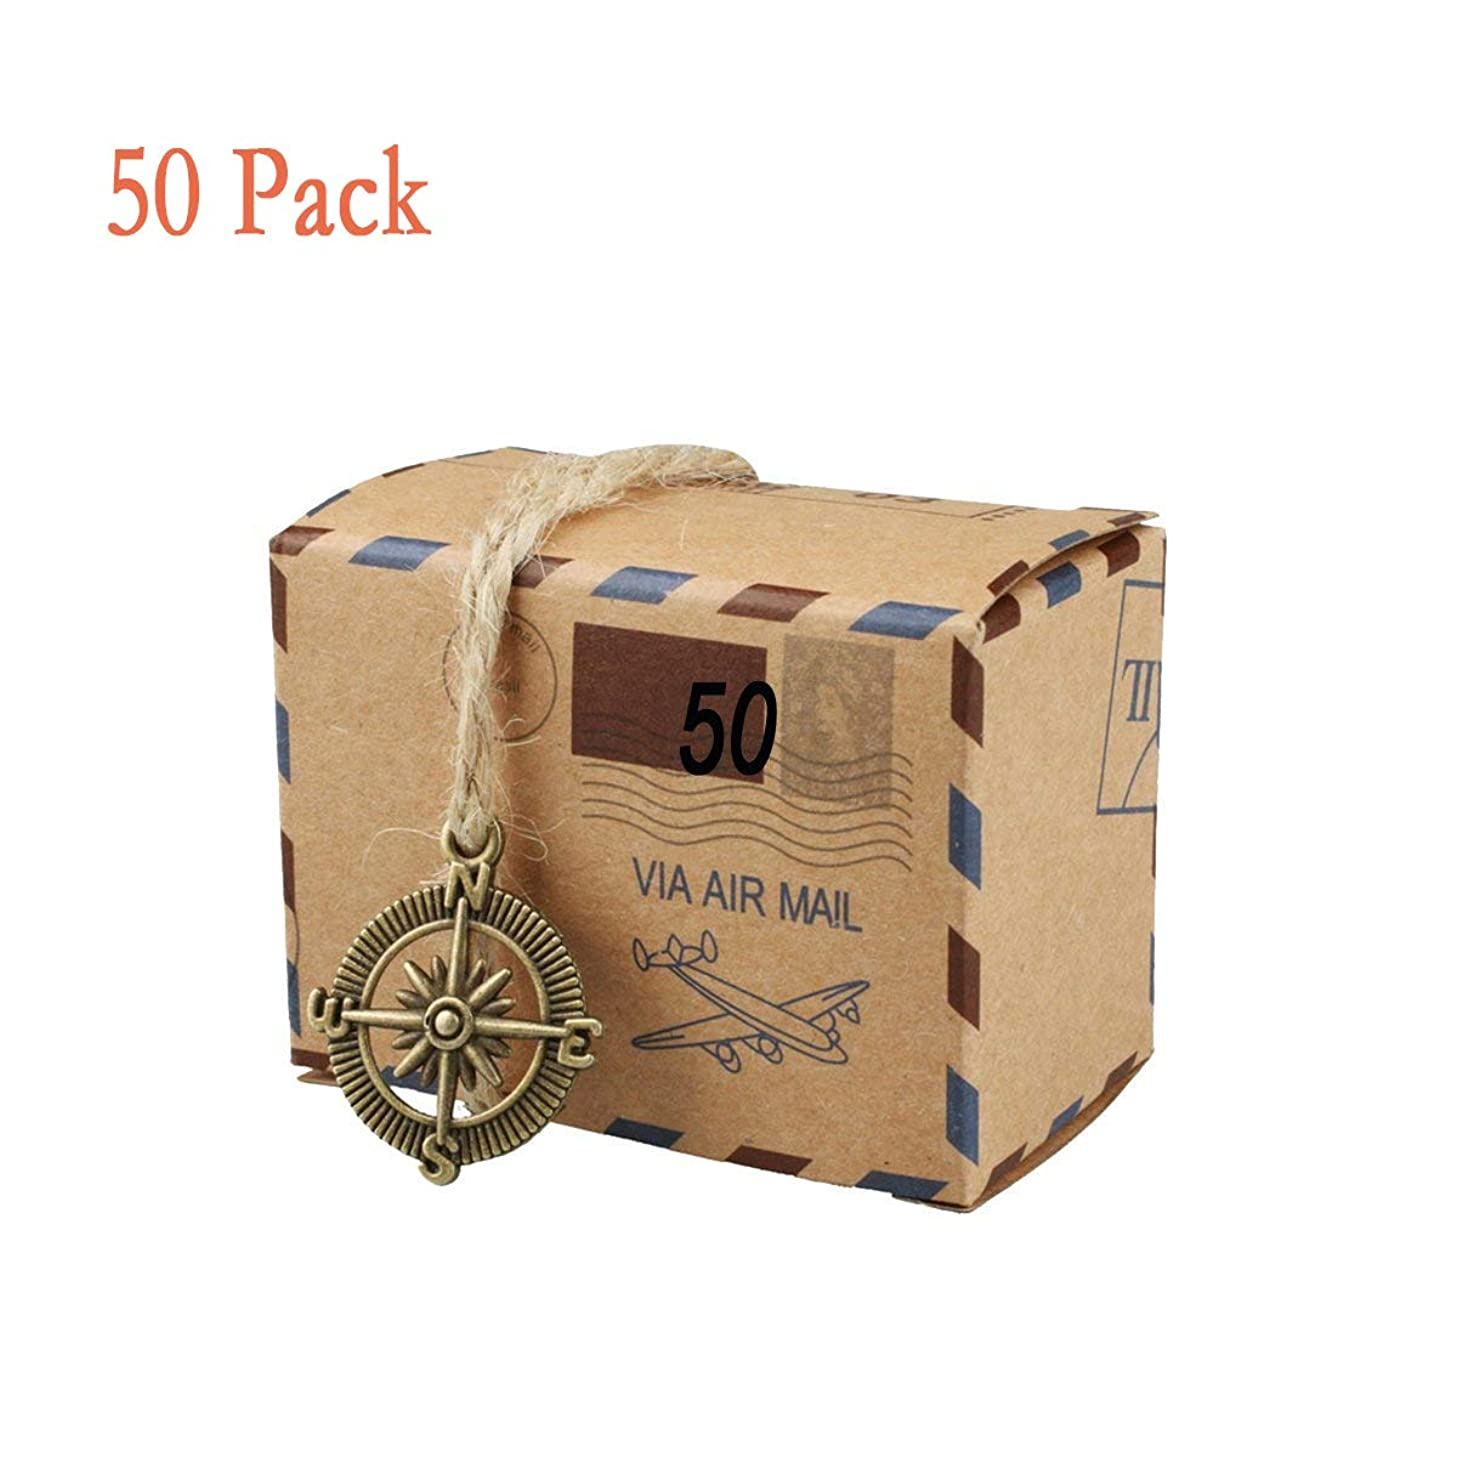 50 PCS Candy Gift Boxes, Bestga DIY Kraft Boxes Retro Post Mail Style Wedding Party Favor Gift Boxes Xmas Cookie Treat Goody Paper Boxes Bags for Christmas, Birthday, Holiday, Thanksgiving - Compass